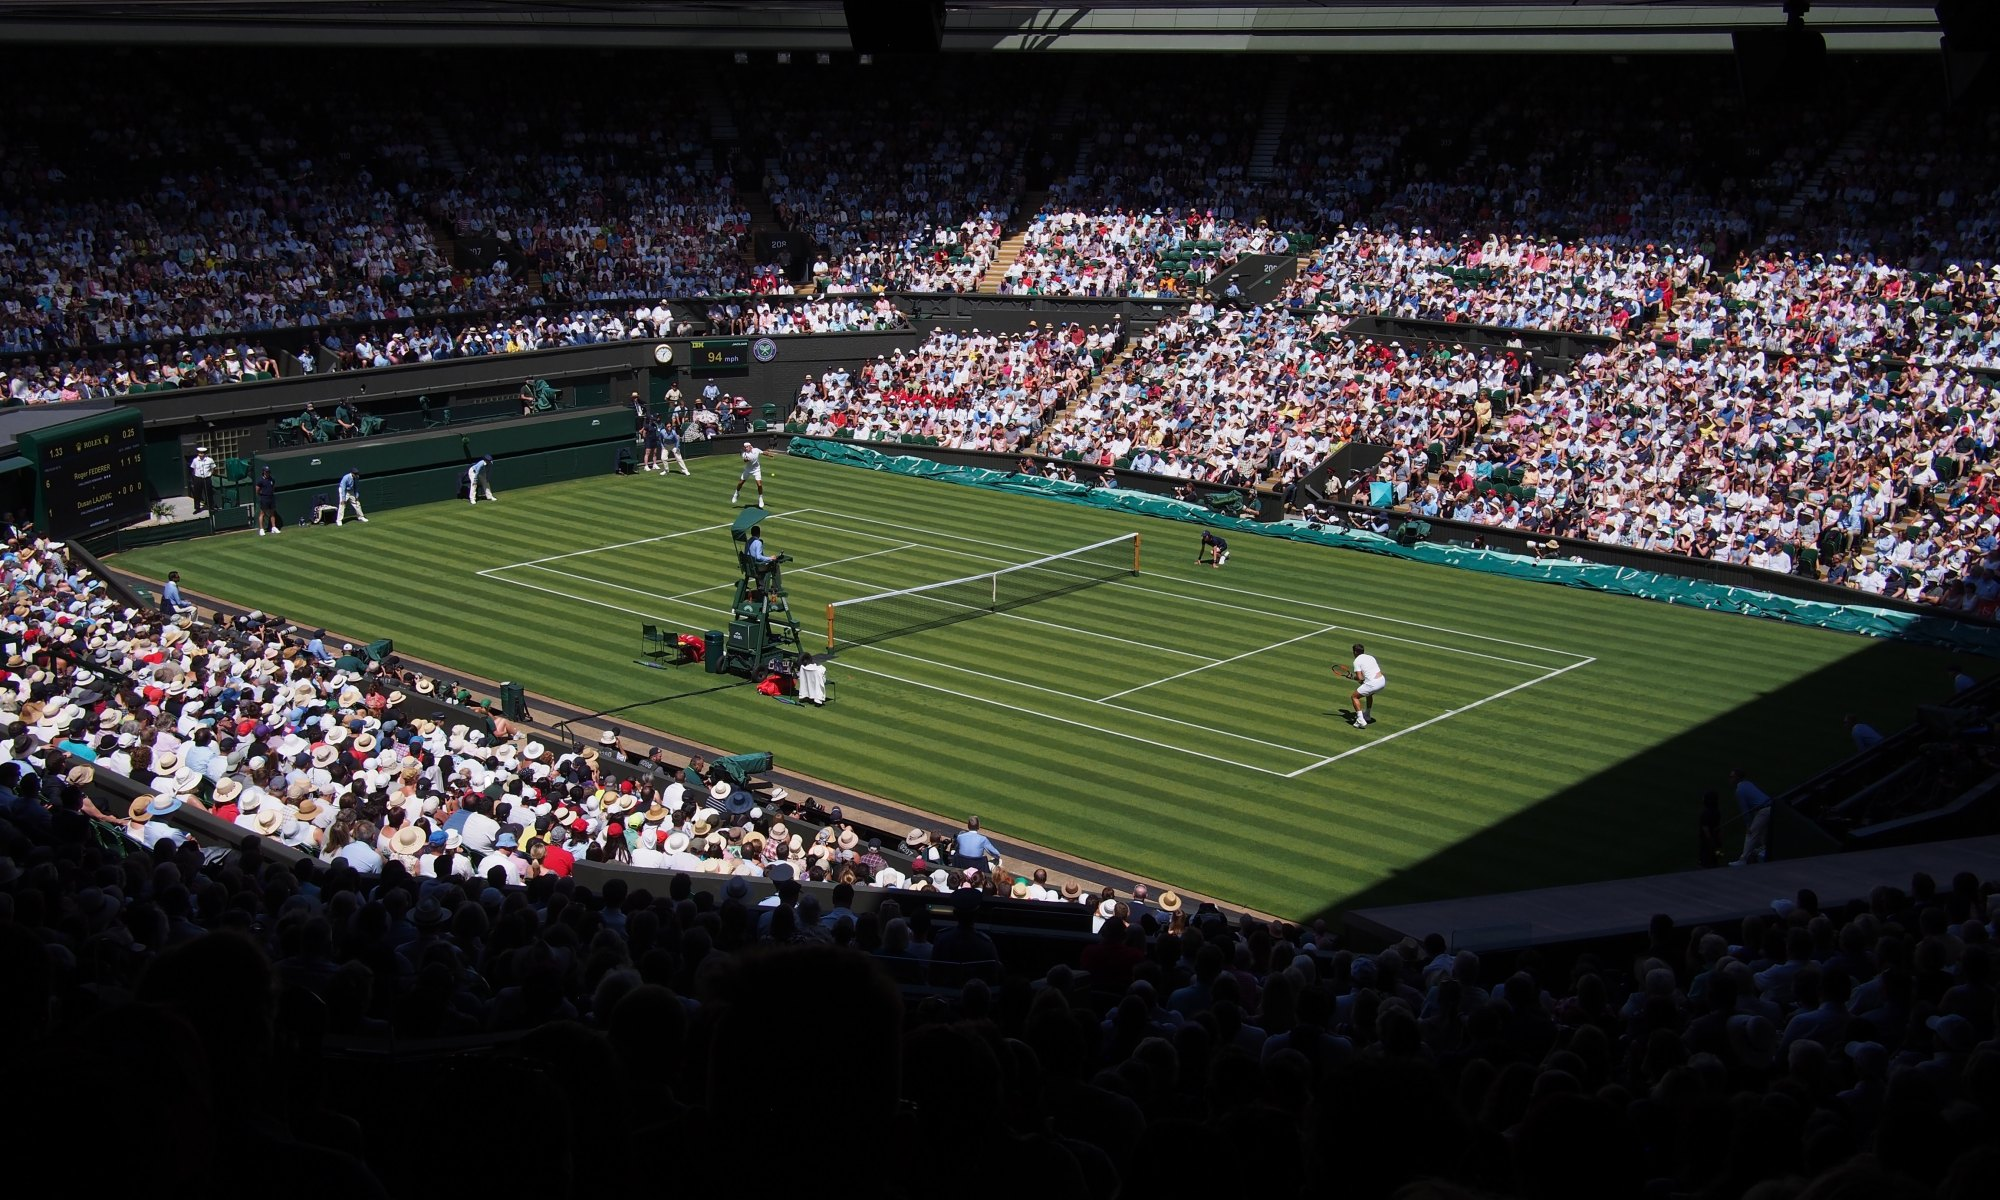 Singles tennis match on Wimbledon center court